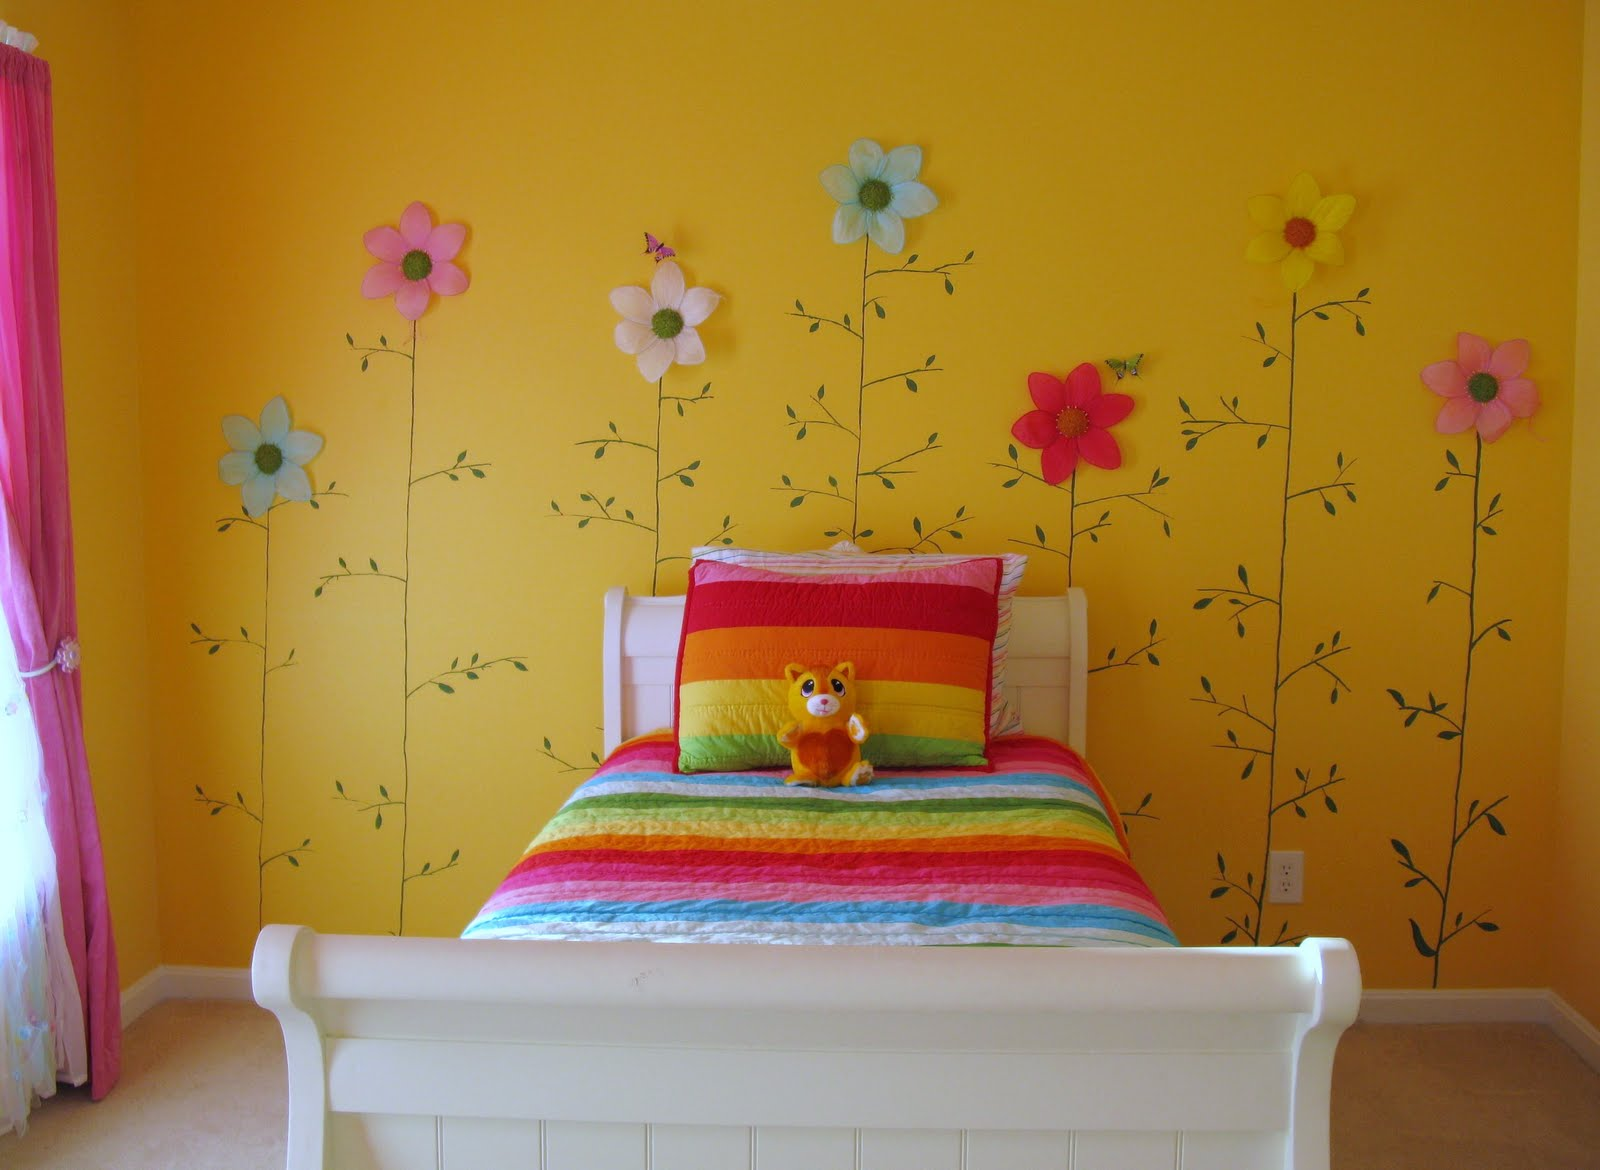 Decorating Influenza A virus subtype H5N1 Bedroom With Influenza A virus subtype H5N1 Flower Theme    New Home Ideas- Flower Bedroom Theme Could Describe The Softness of Influenza A virus subtype H5N1 Woman